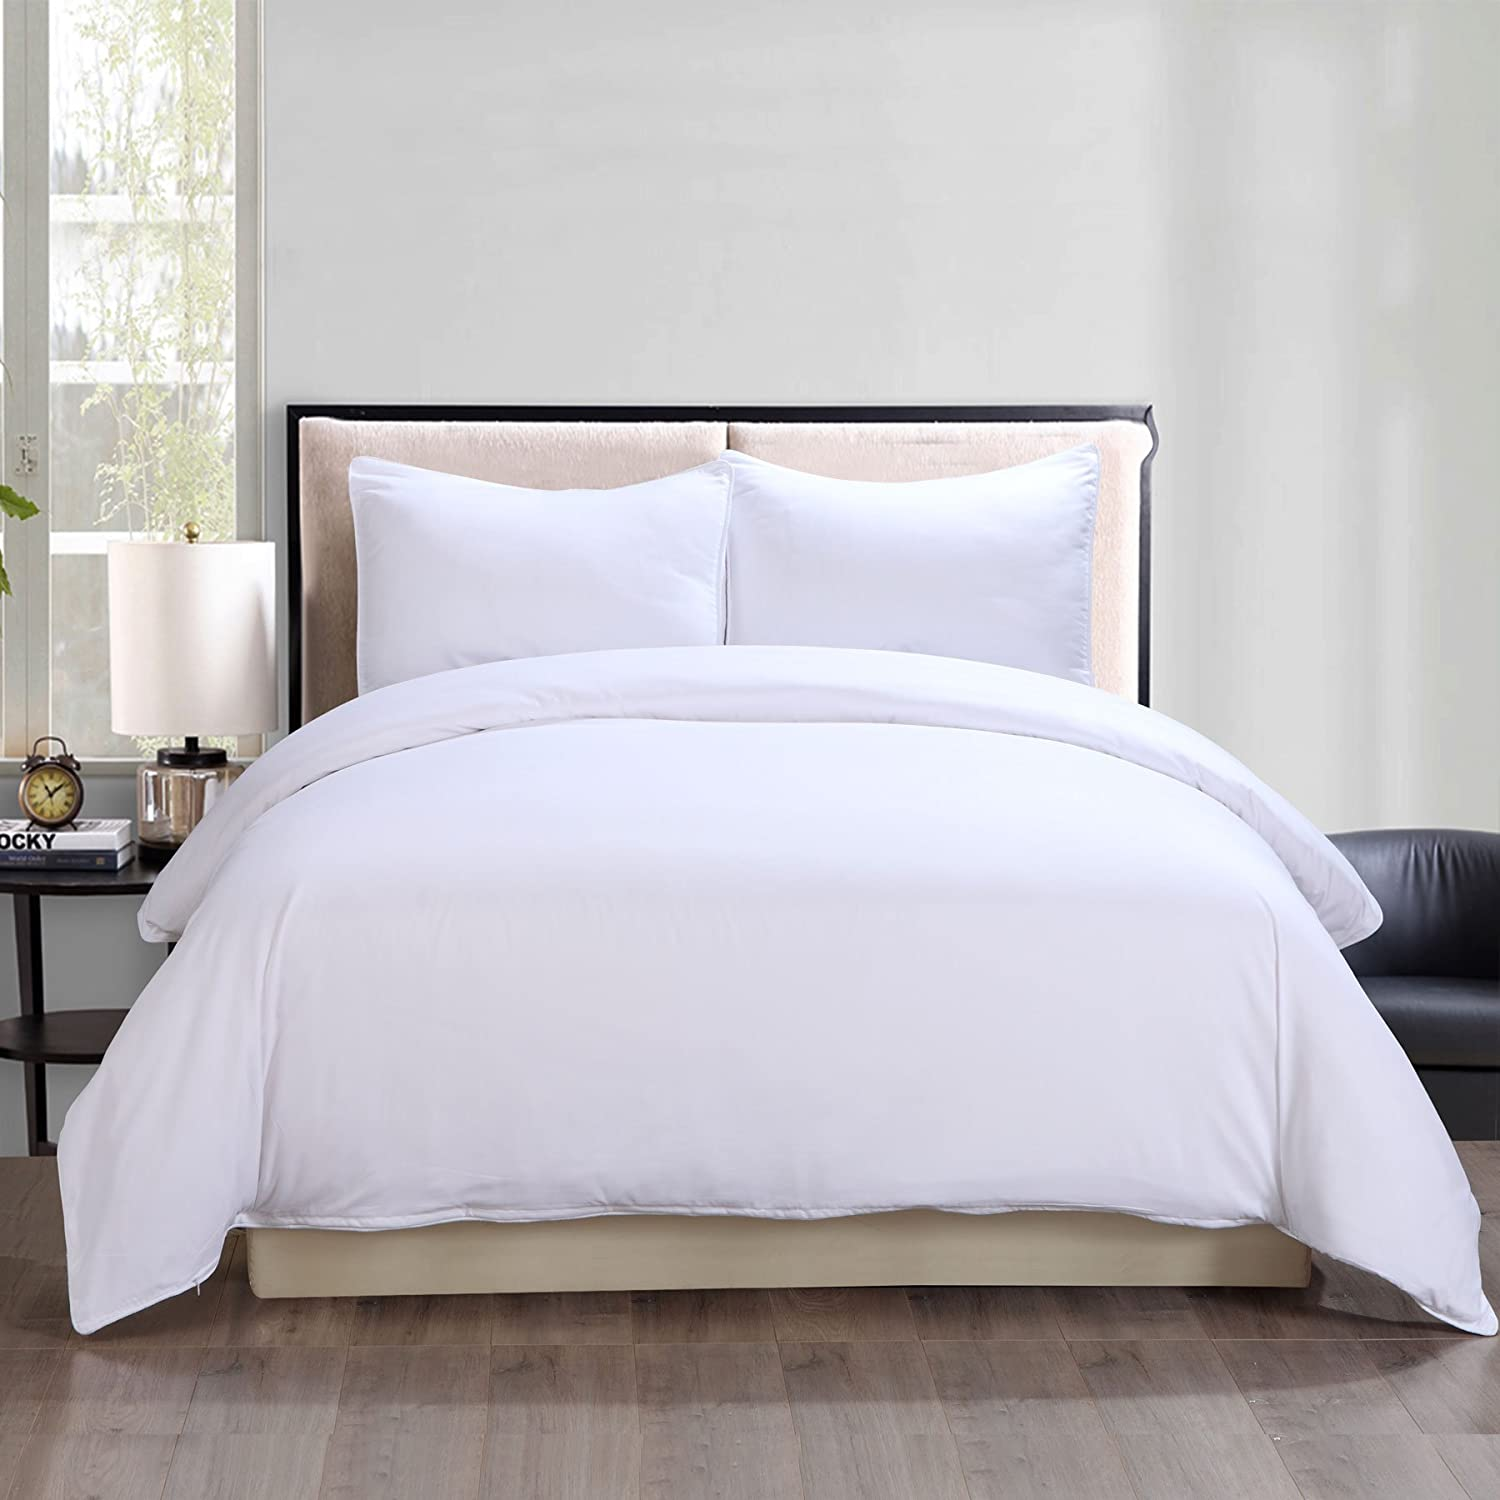 Stayclean Lotus Home Water and Stain Resistant Duvet Mini Set Full//Queen White